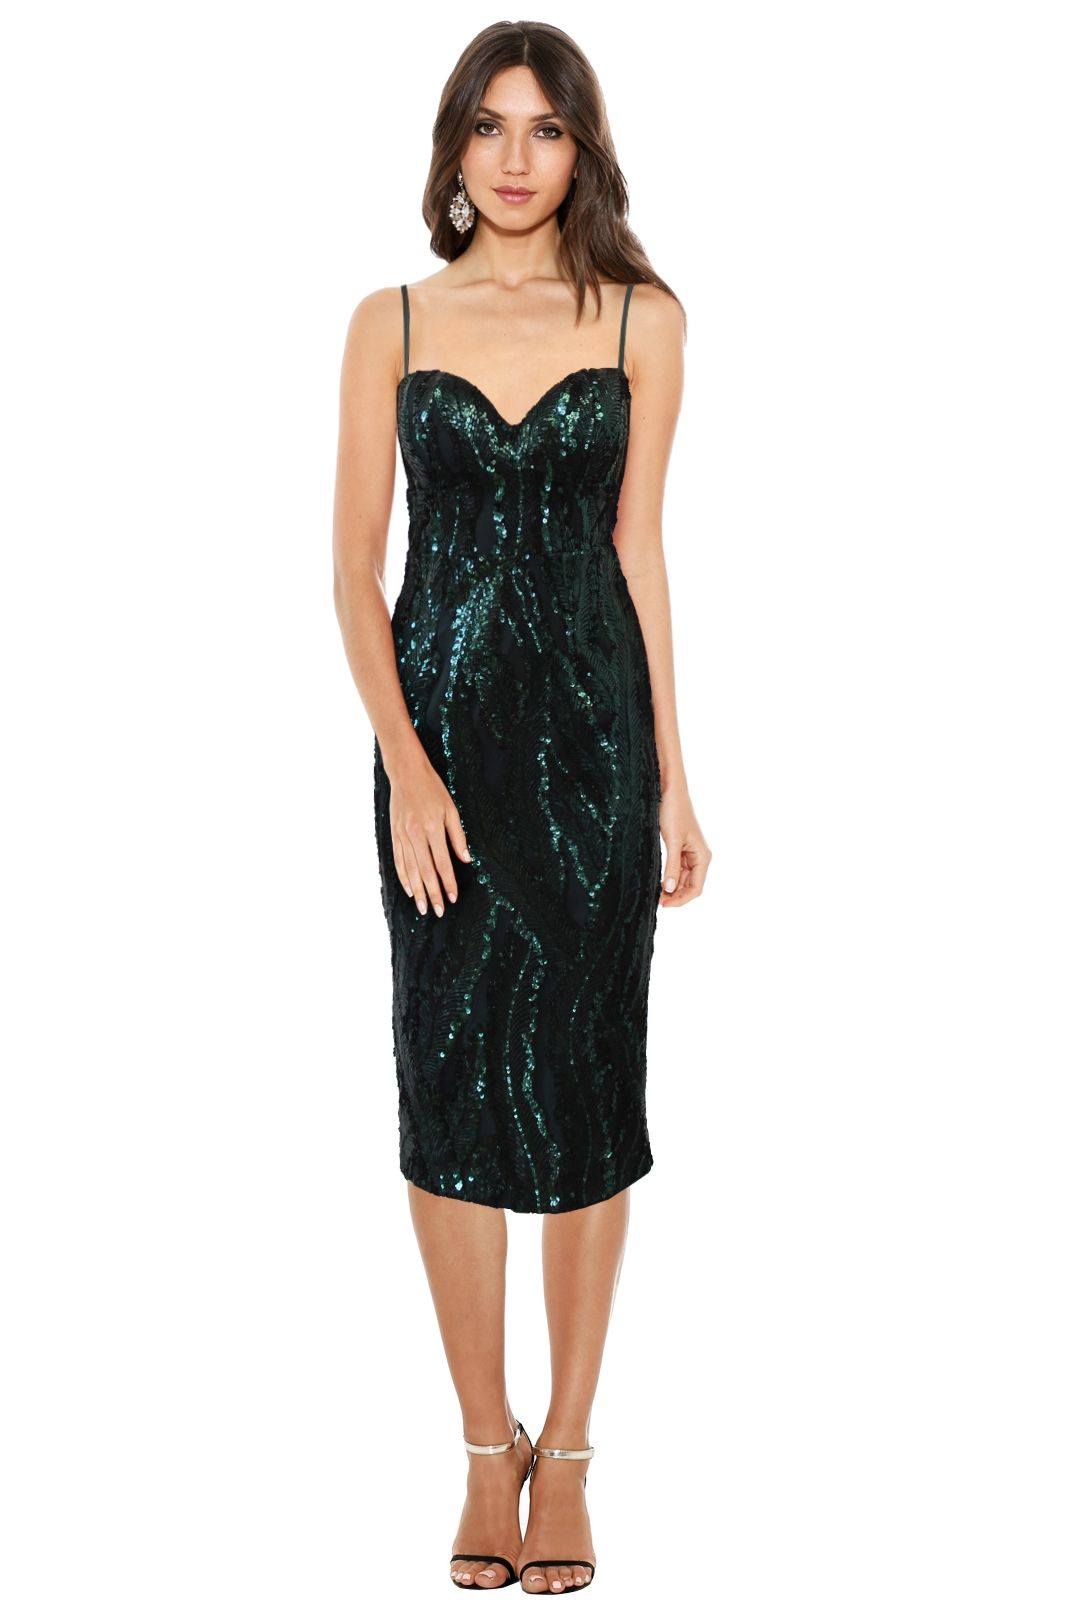 Elle Zeitoune - Tara Sequin Dress - Green - Front